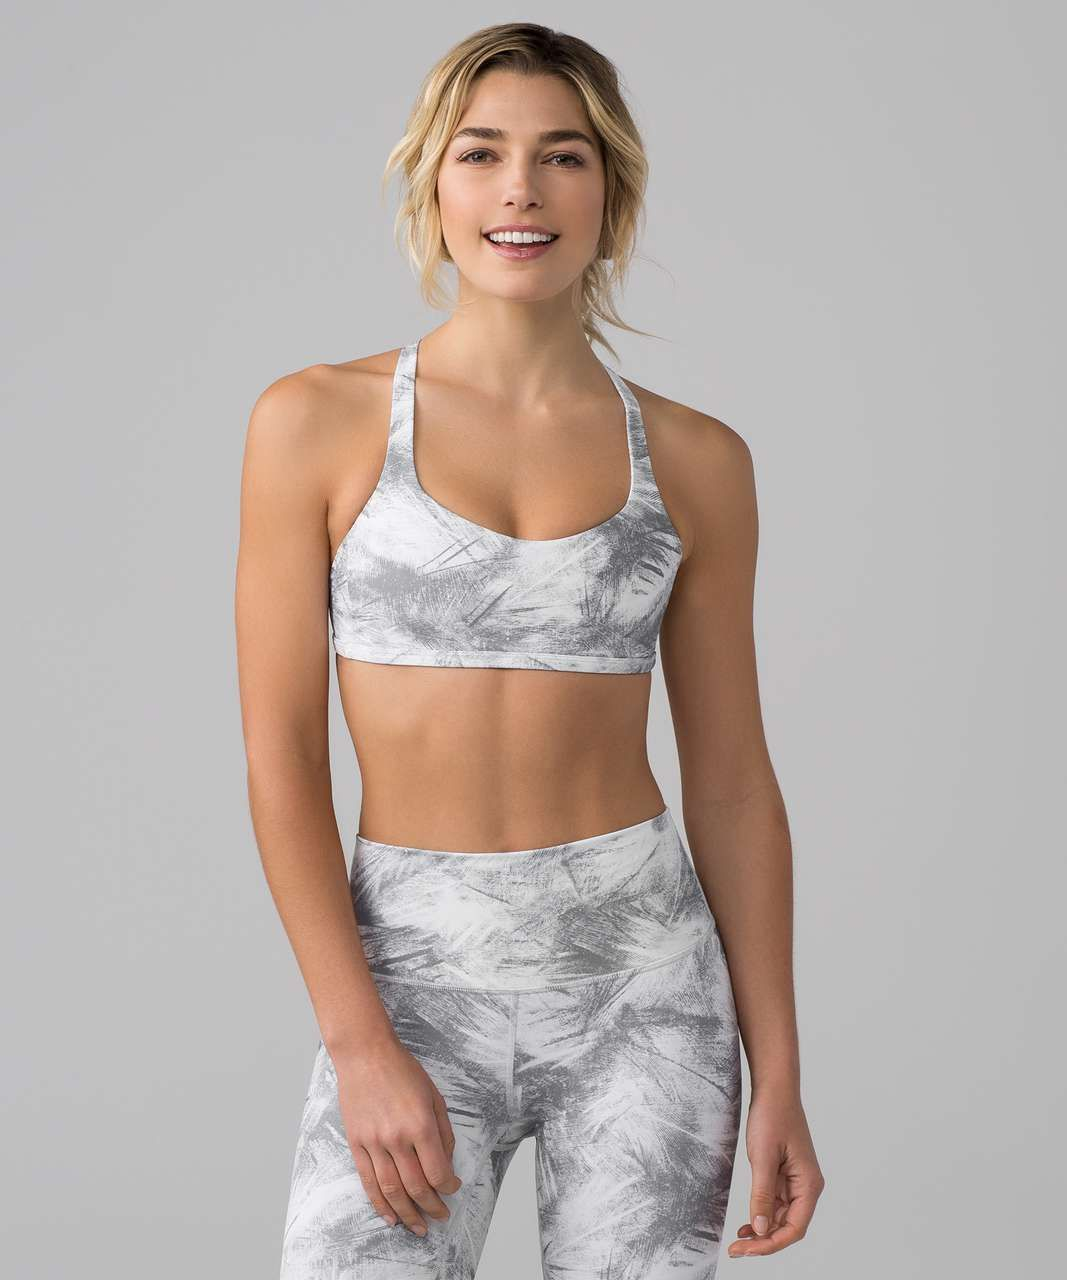 d71f8ed8bc692 Lululemon Free To Be Zen Bra - Breeze By White Light Cast - lulu fanatics